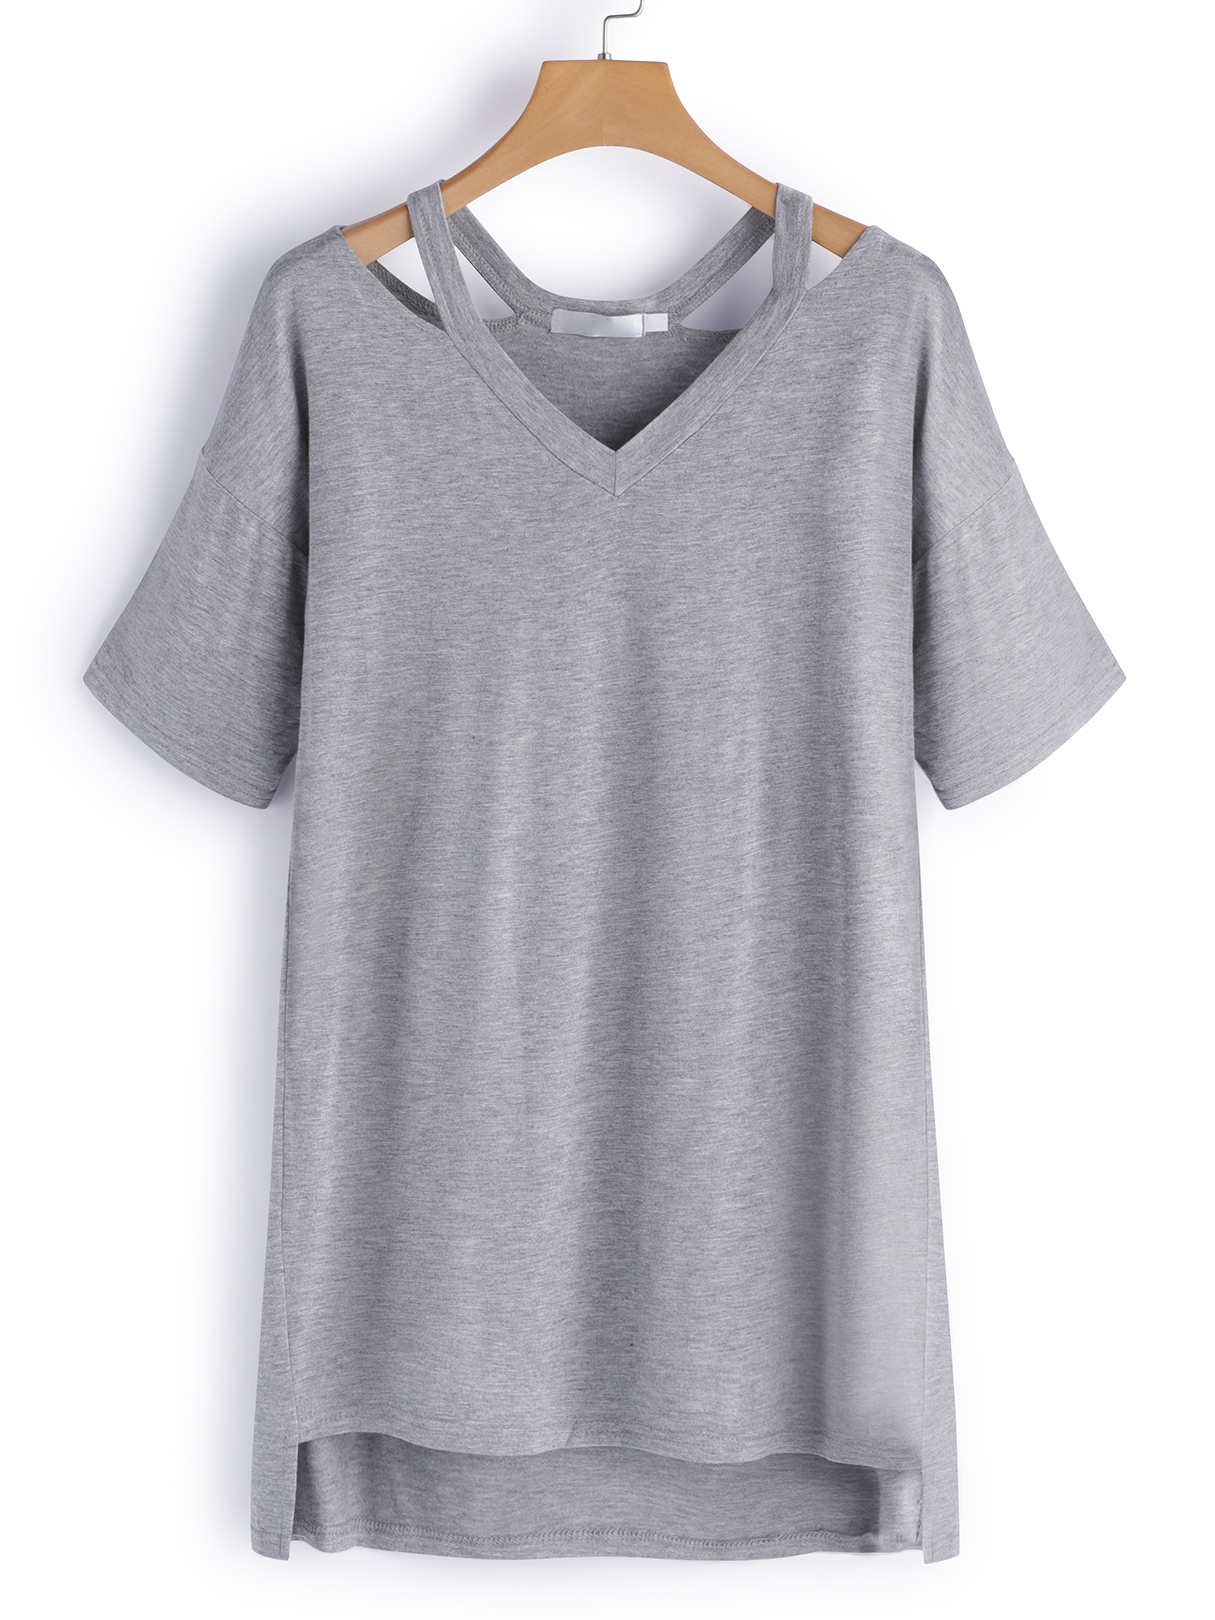 Grey Hollow Out V-neck Short Sleeves T-shirts red v neck short sleeves t shirts